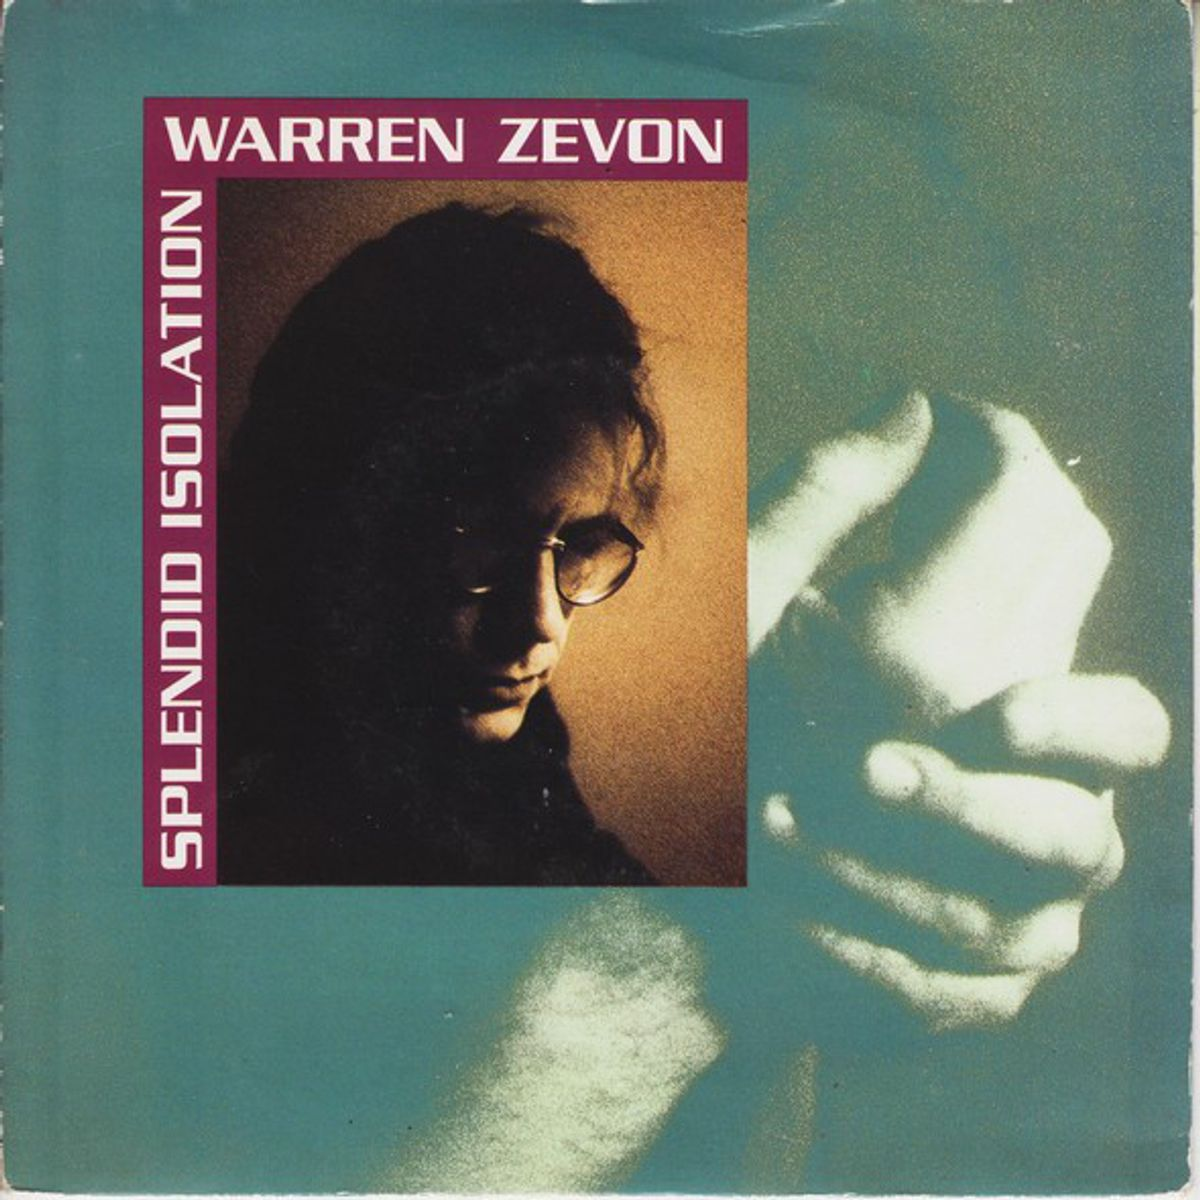 #Quarantainemuziek - Warren Zevon - Splendid Isolation (1989)